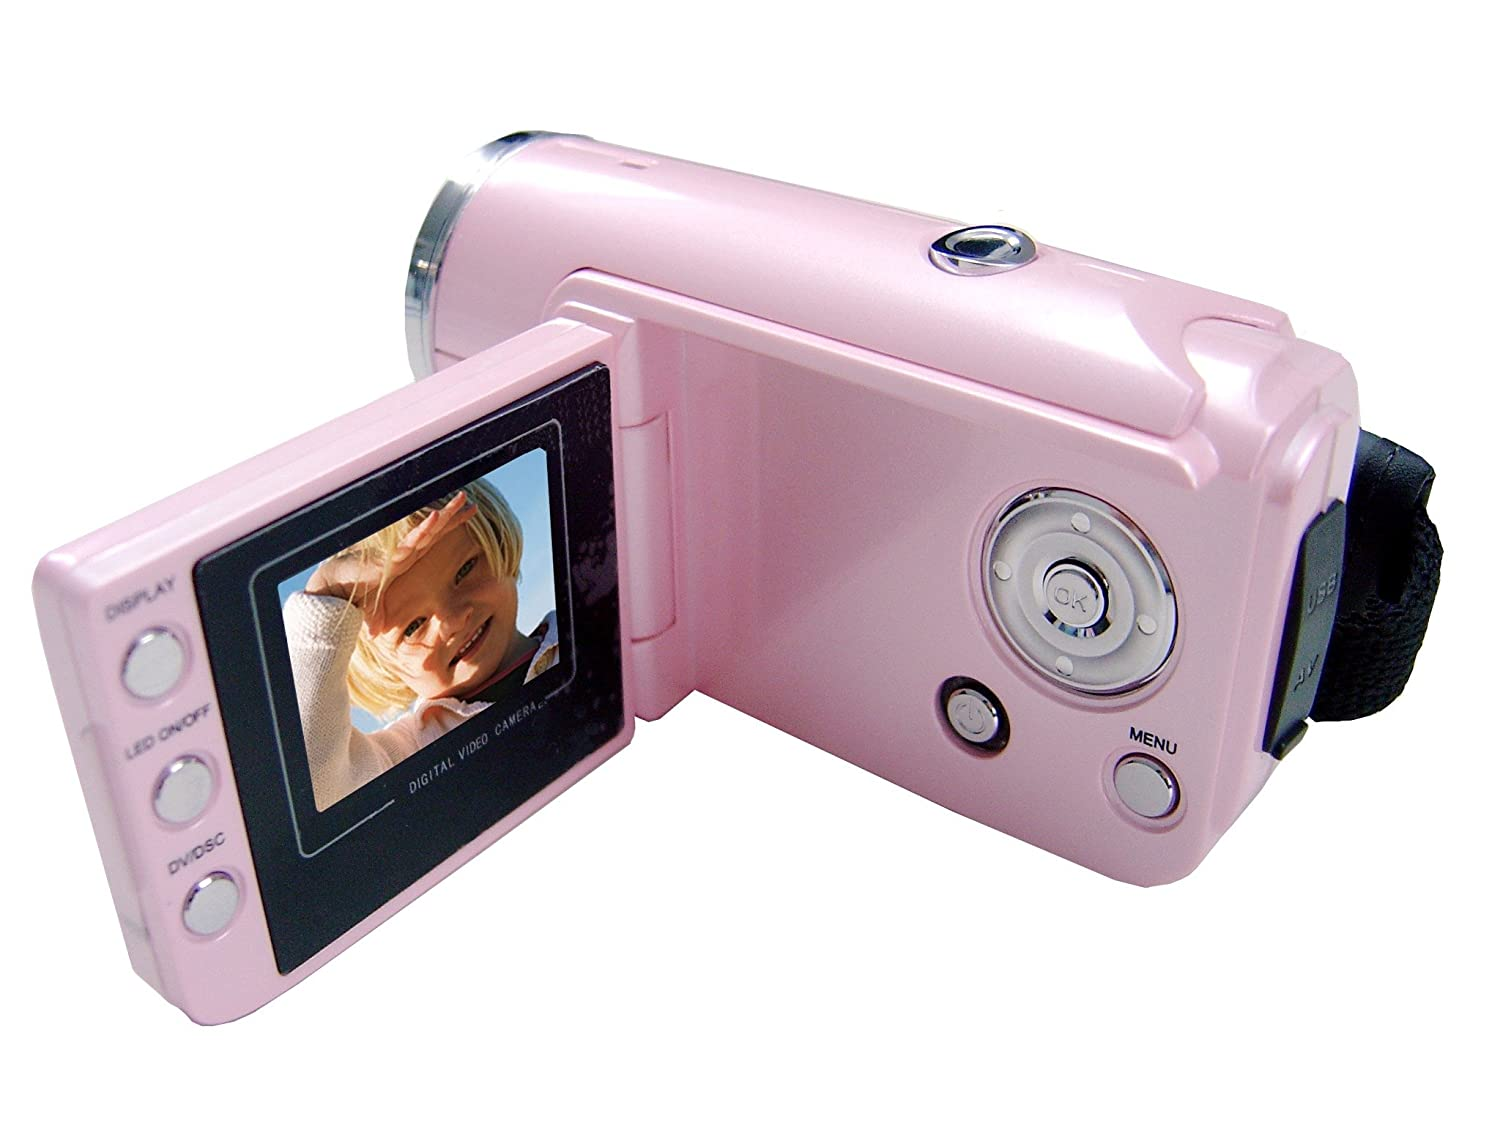 mustek dv316l digital camcorder pink amazon co uk camera photo rh amazon co uk  Mustek DV526L